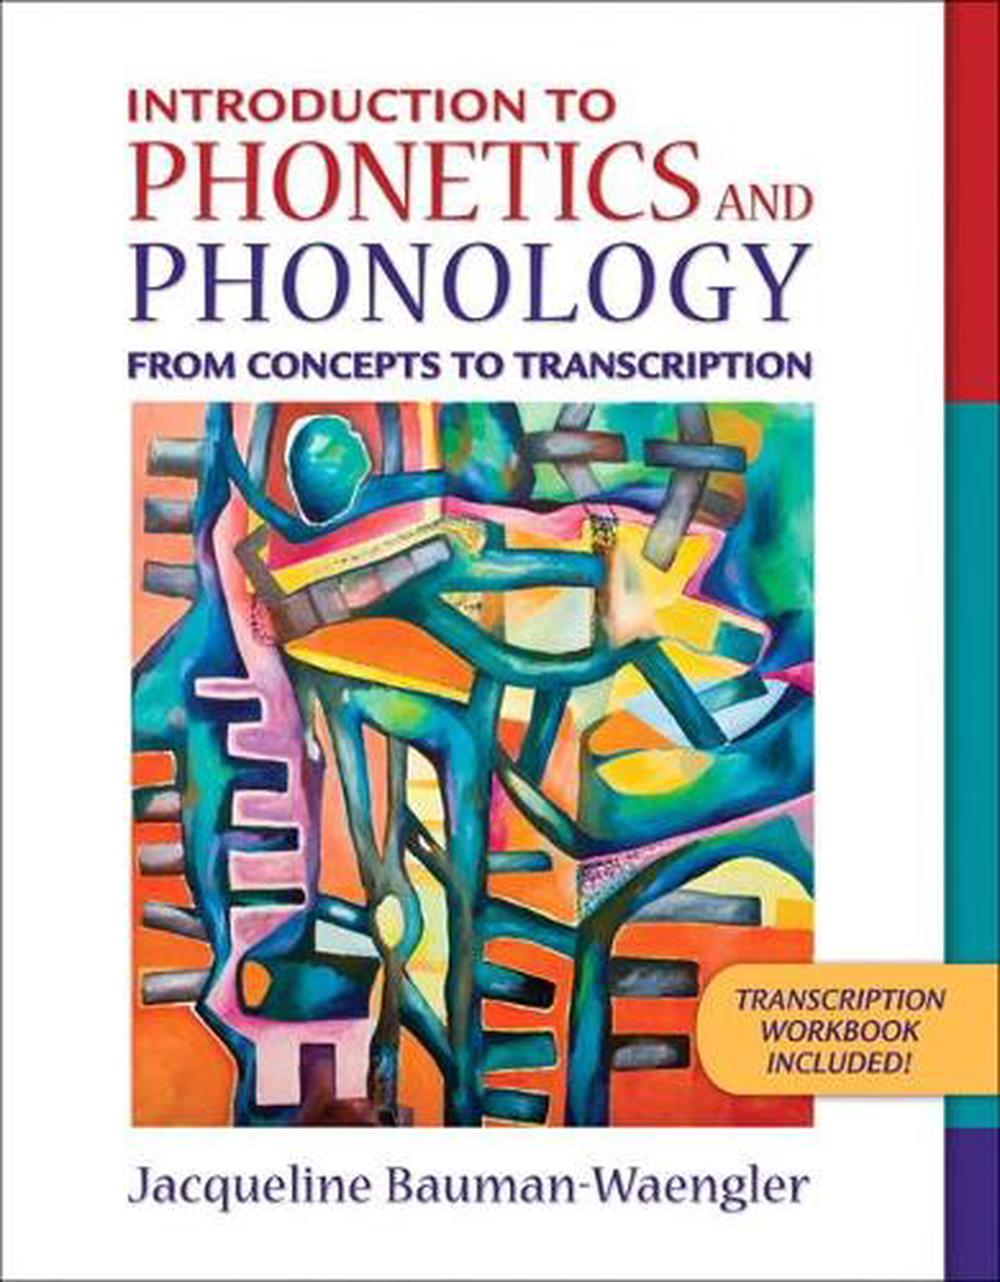 introduction to phonetics Phonetics in phonology linguists even seem to doubt whether phonetics is properly part of linguistics at all introduction the central task.